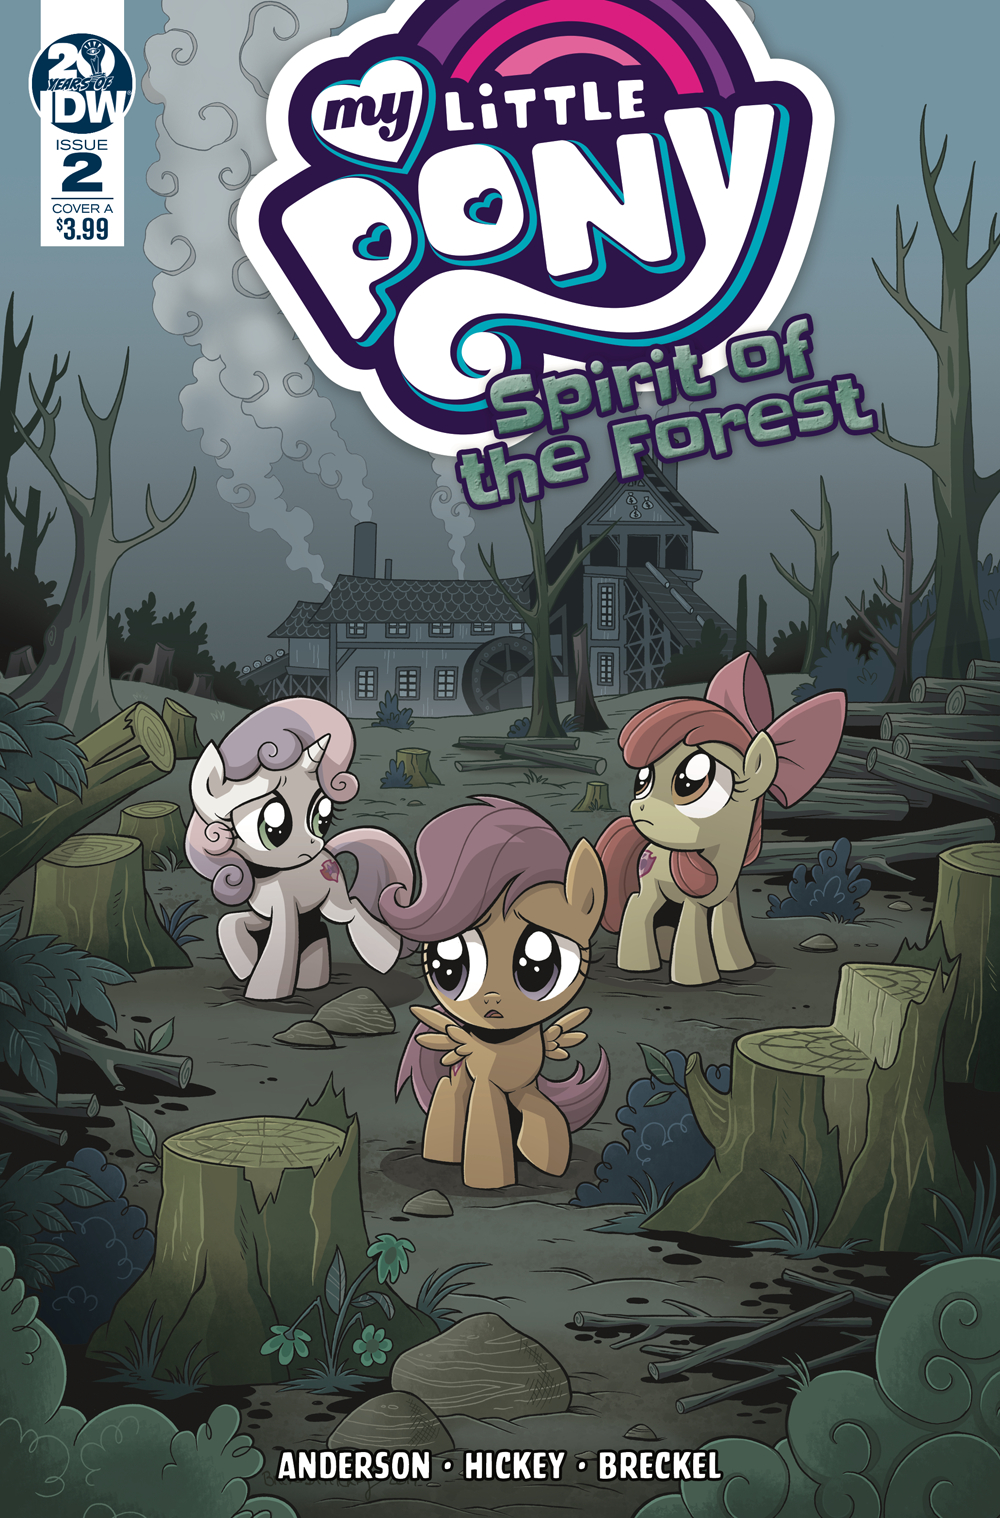 MY LITTLE PONY SPIRIT OF THE FOREST #2 (OF 3) CVR A HICKEY (